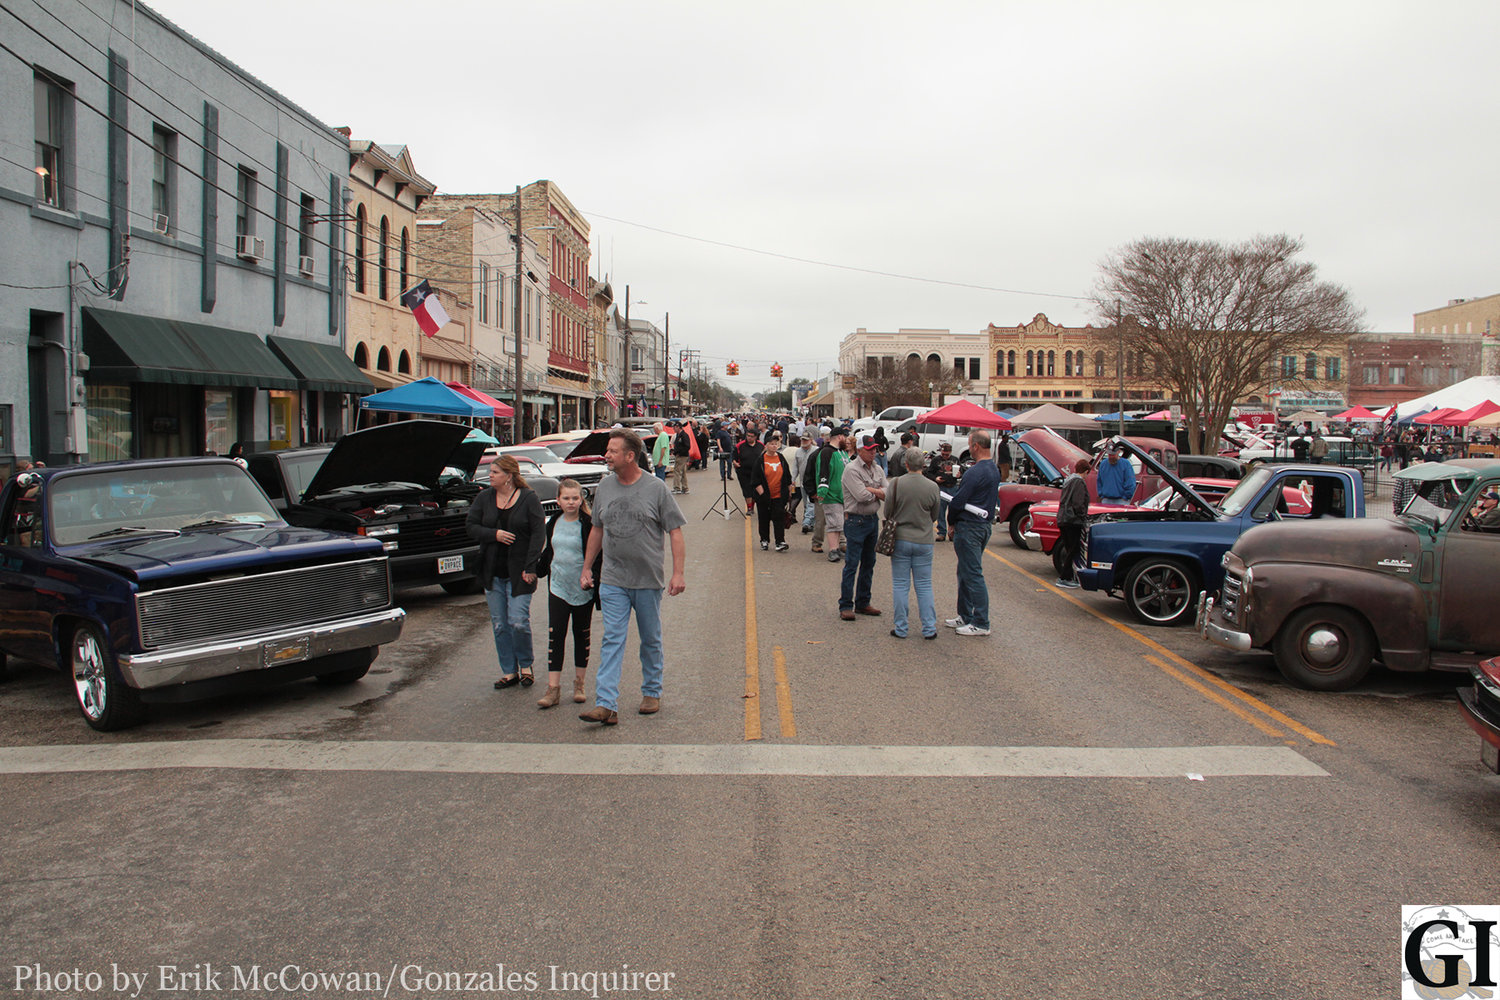 Though the expected number of cars and spectators were off by initial predictions, those that attended the Hot Rods and Hatters Car Show downtown on Saturday were treated to some sweet rides, live music, and various vendors.